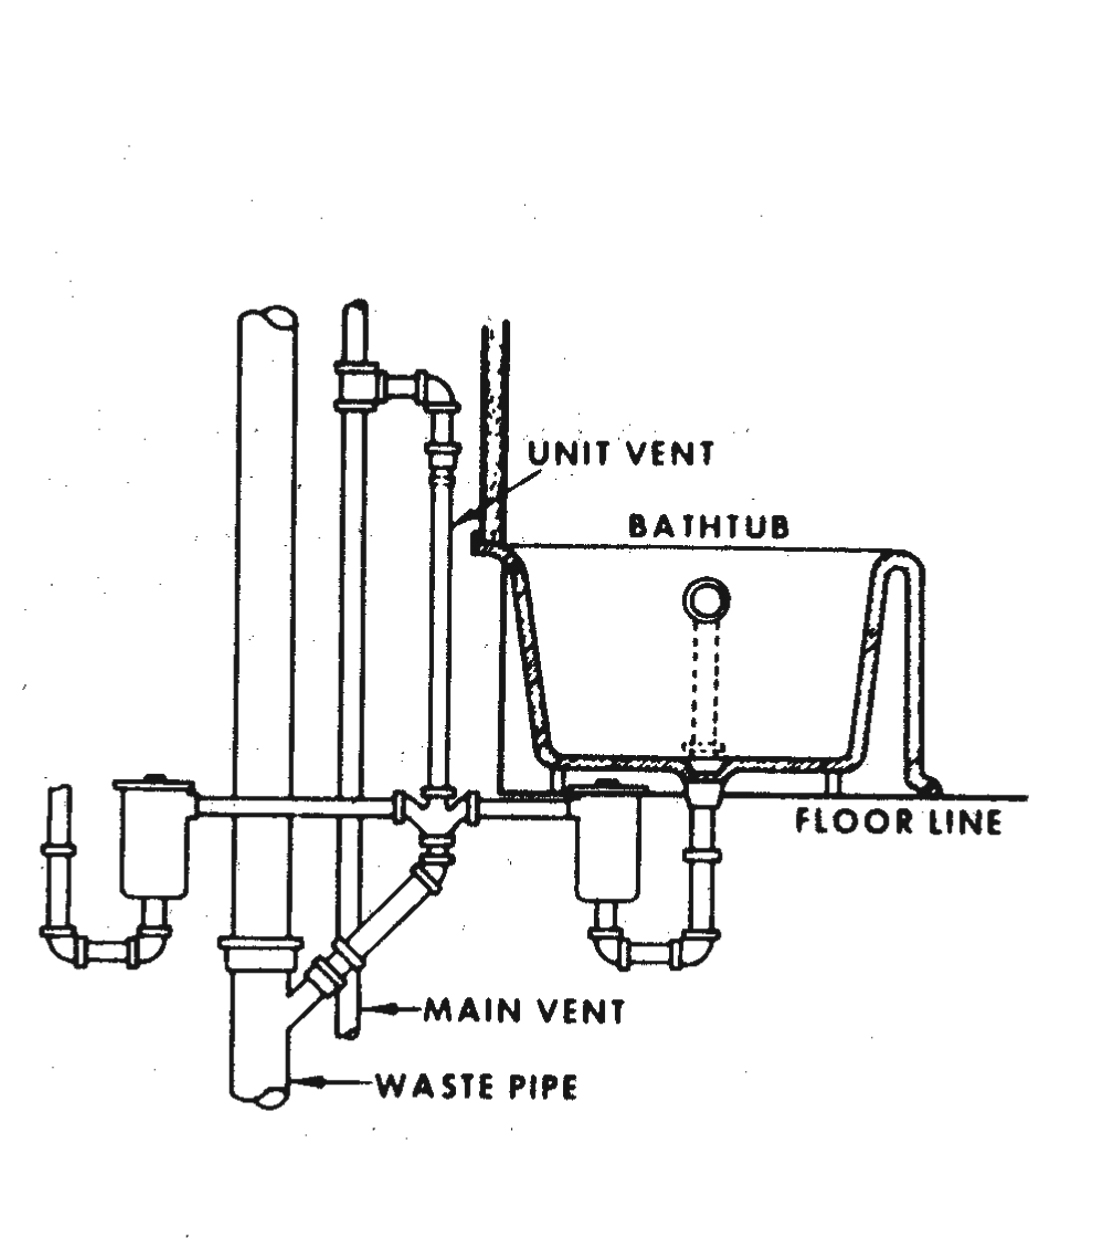 Figure 9.13. Unit Vent Used in Bathtub Installation